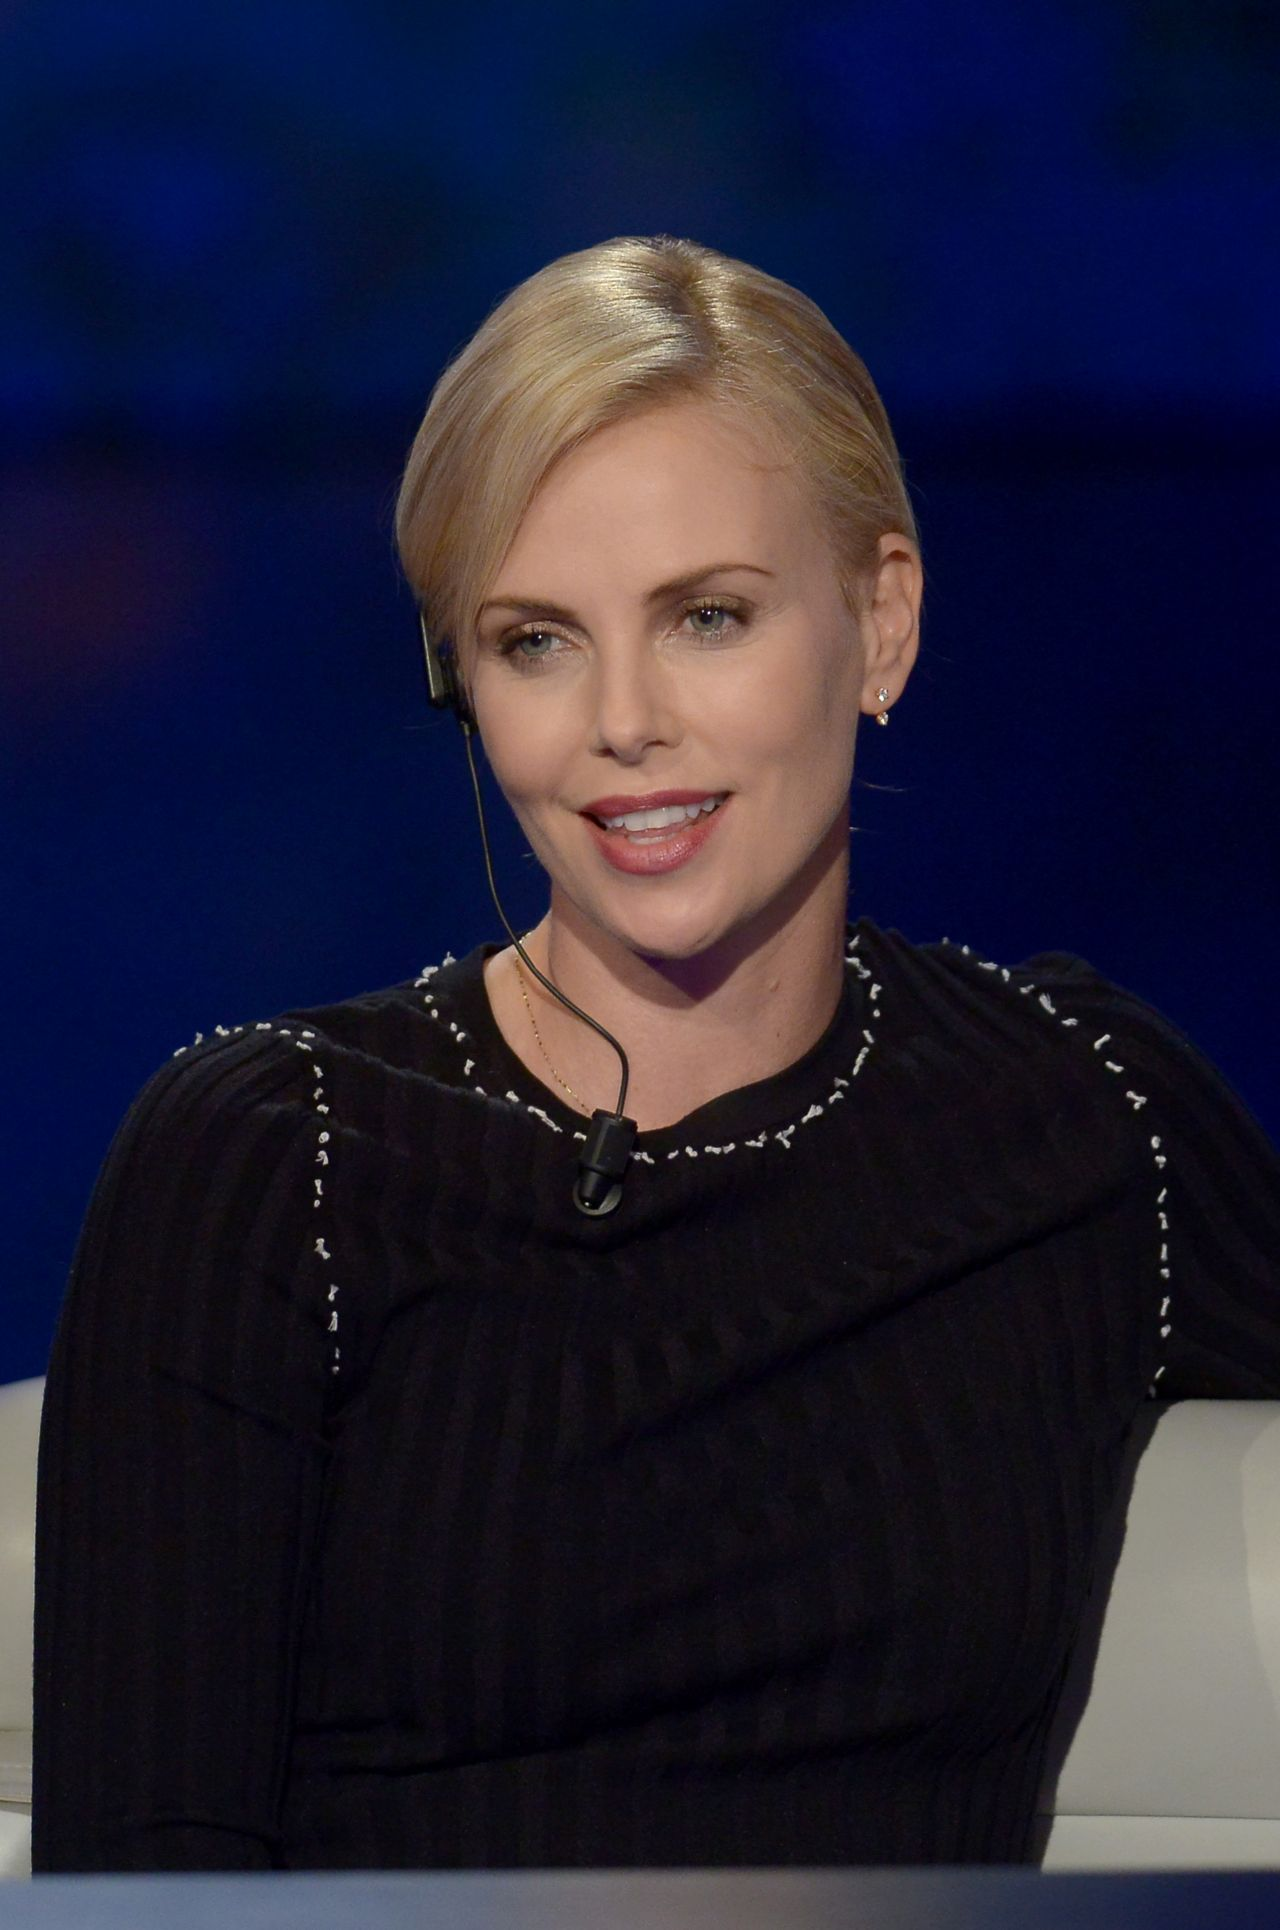 Charlize Theron - On Che Tempo Che Fa in Milan, Italy 3/31 ... Charlize Theron